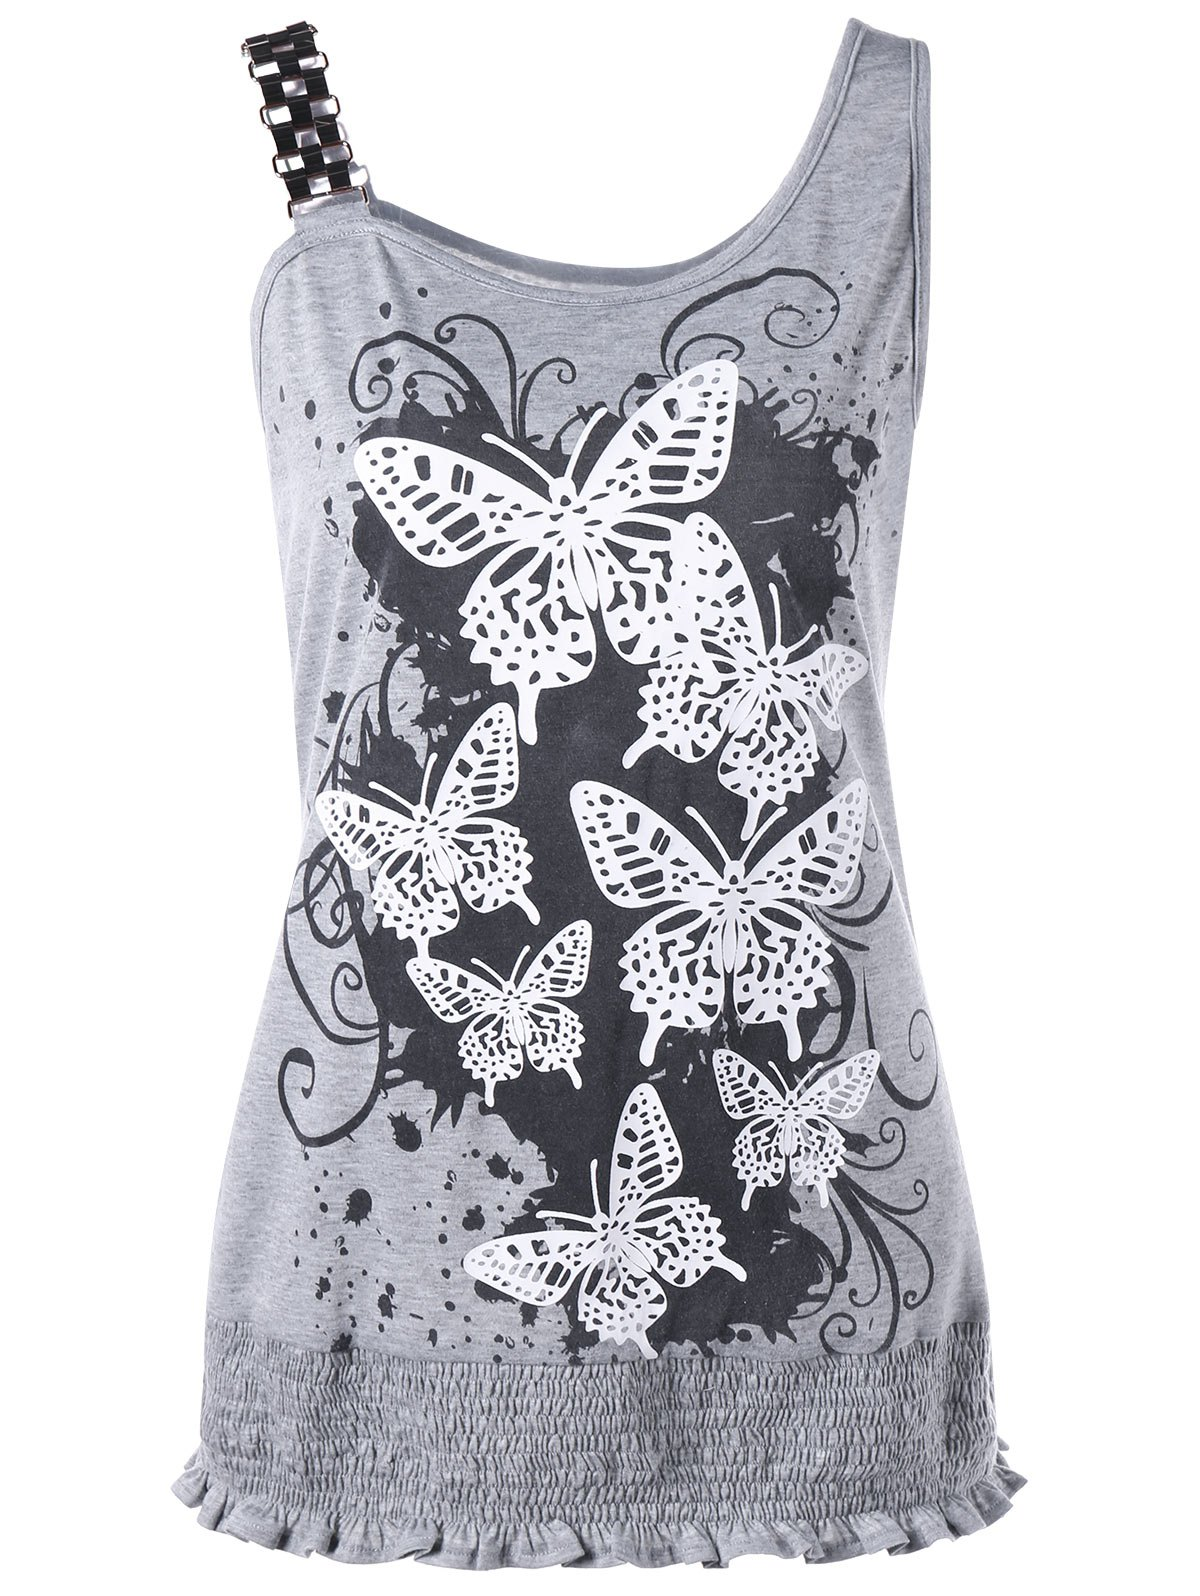 Butterfly Print Smocked Plus Size Tank TopWOMEN<br><br>Size: 5XL; Color: GRAY; Material: Polyester,Spandex; Shirt Length: Long; Sleeve Length: Sleeveless; Collar: Scoop Neck; Style: Casual; Season: Summer; Pattern Type: Insect; Weight: 0.2600kg; Package Contents: 1 x Tank Top;